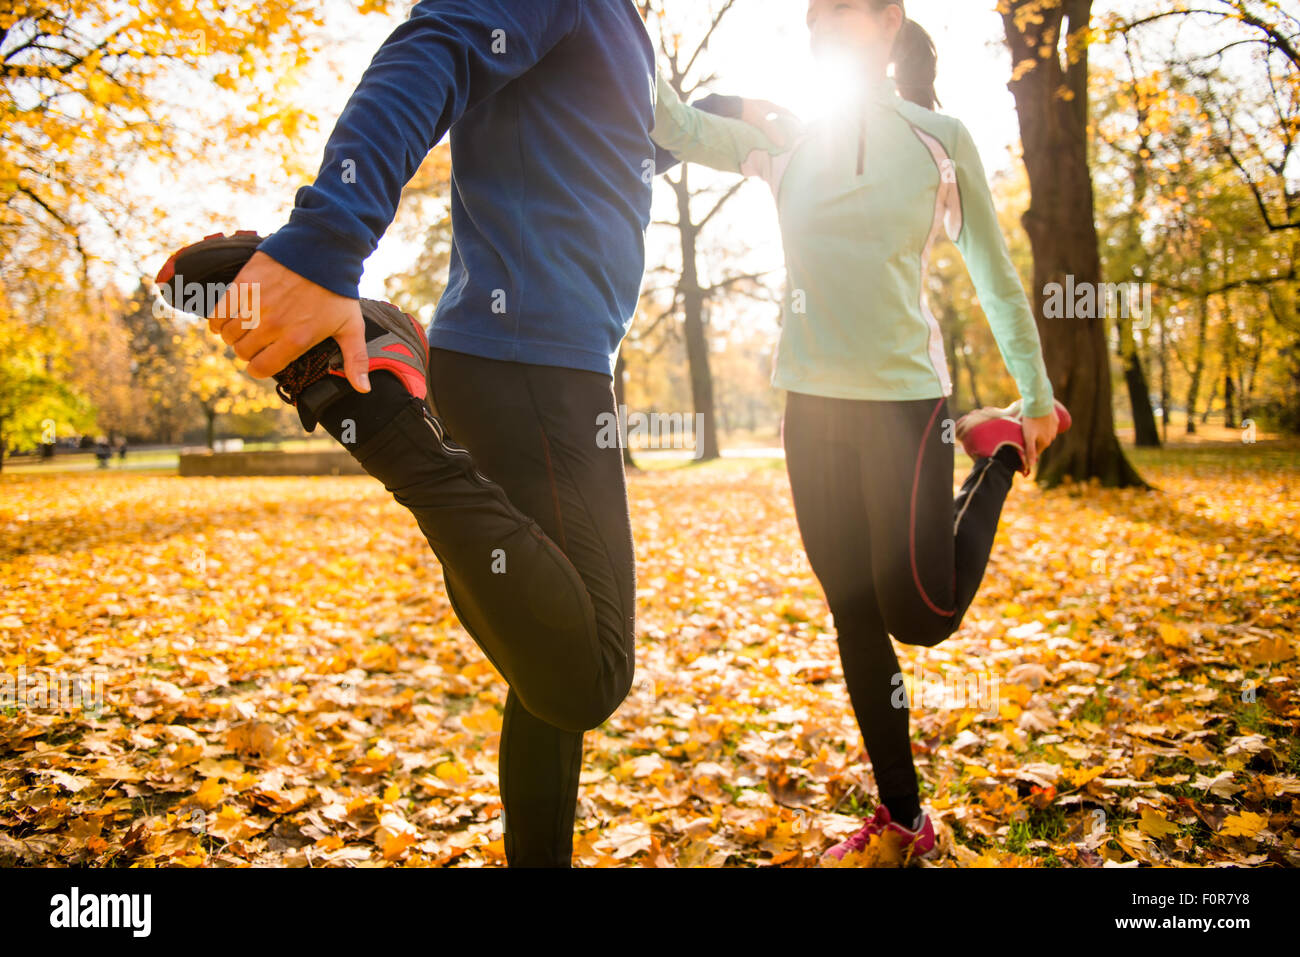 Detail of man and woman stretching legs before jogging in autumn nature - Stock Image